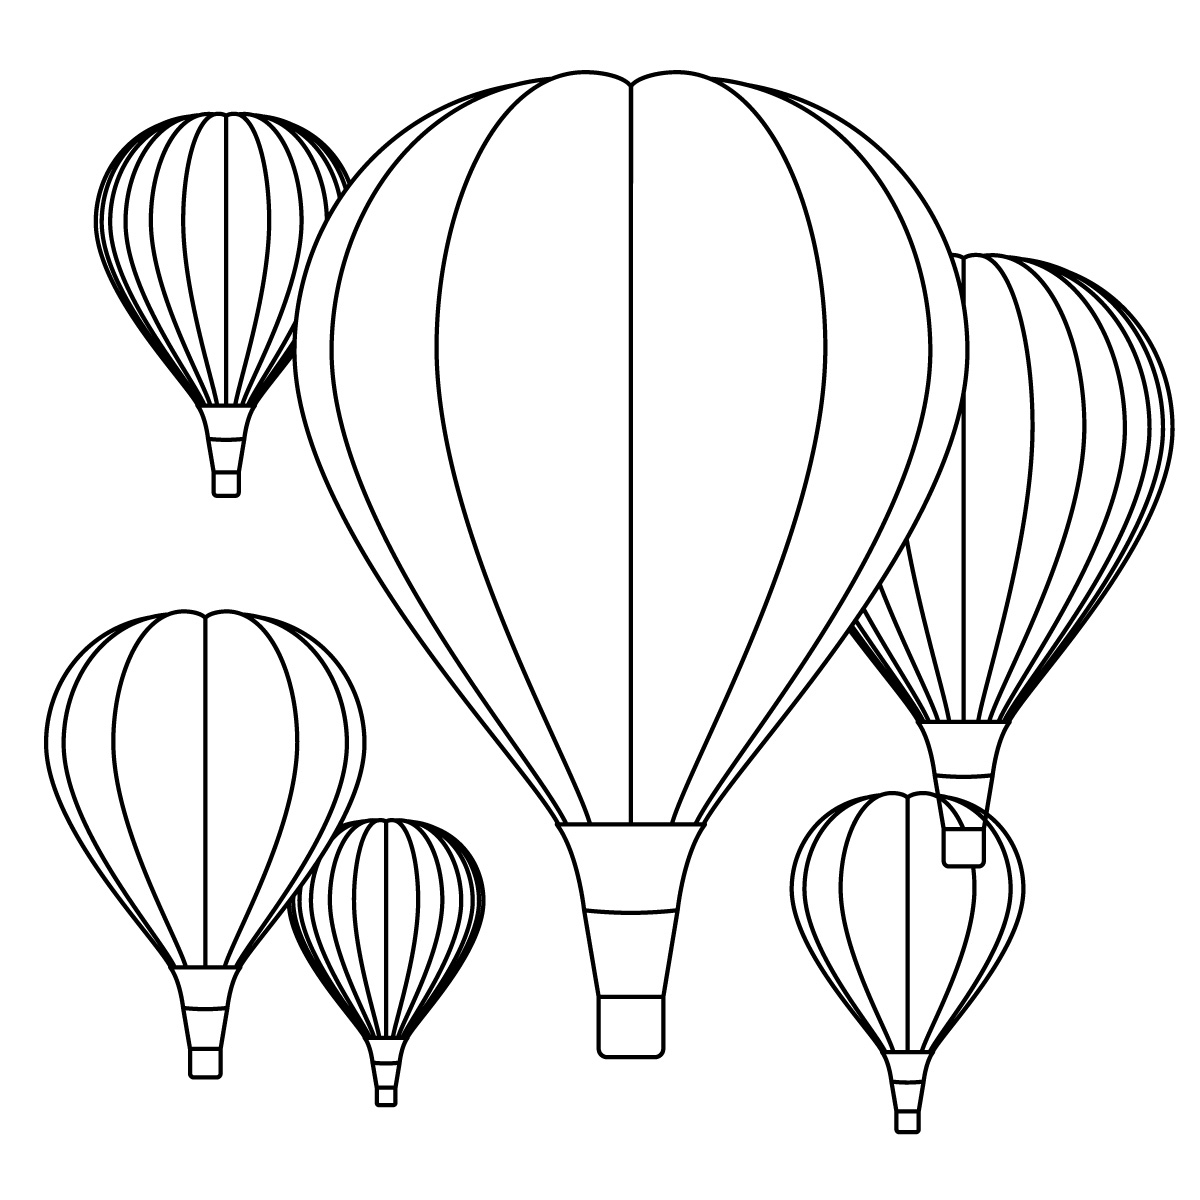 1200x1200 Drawing Of Hot Air Balloon Hot Air Balloon Clipart Line Drawing